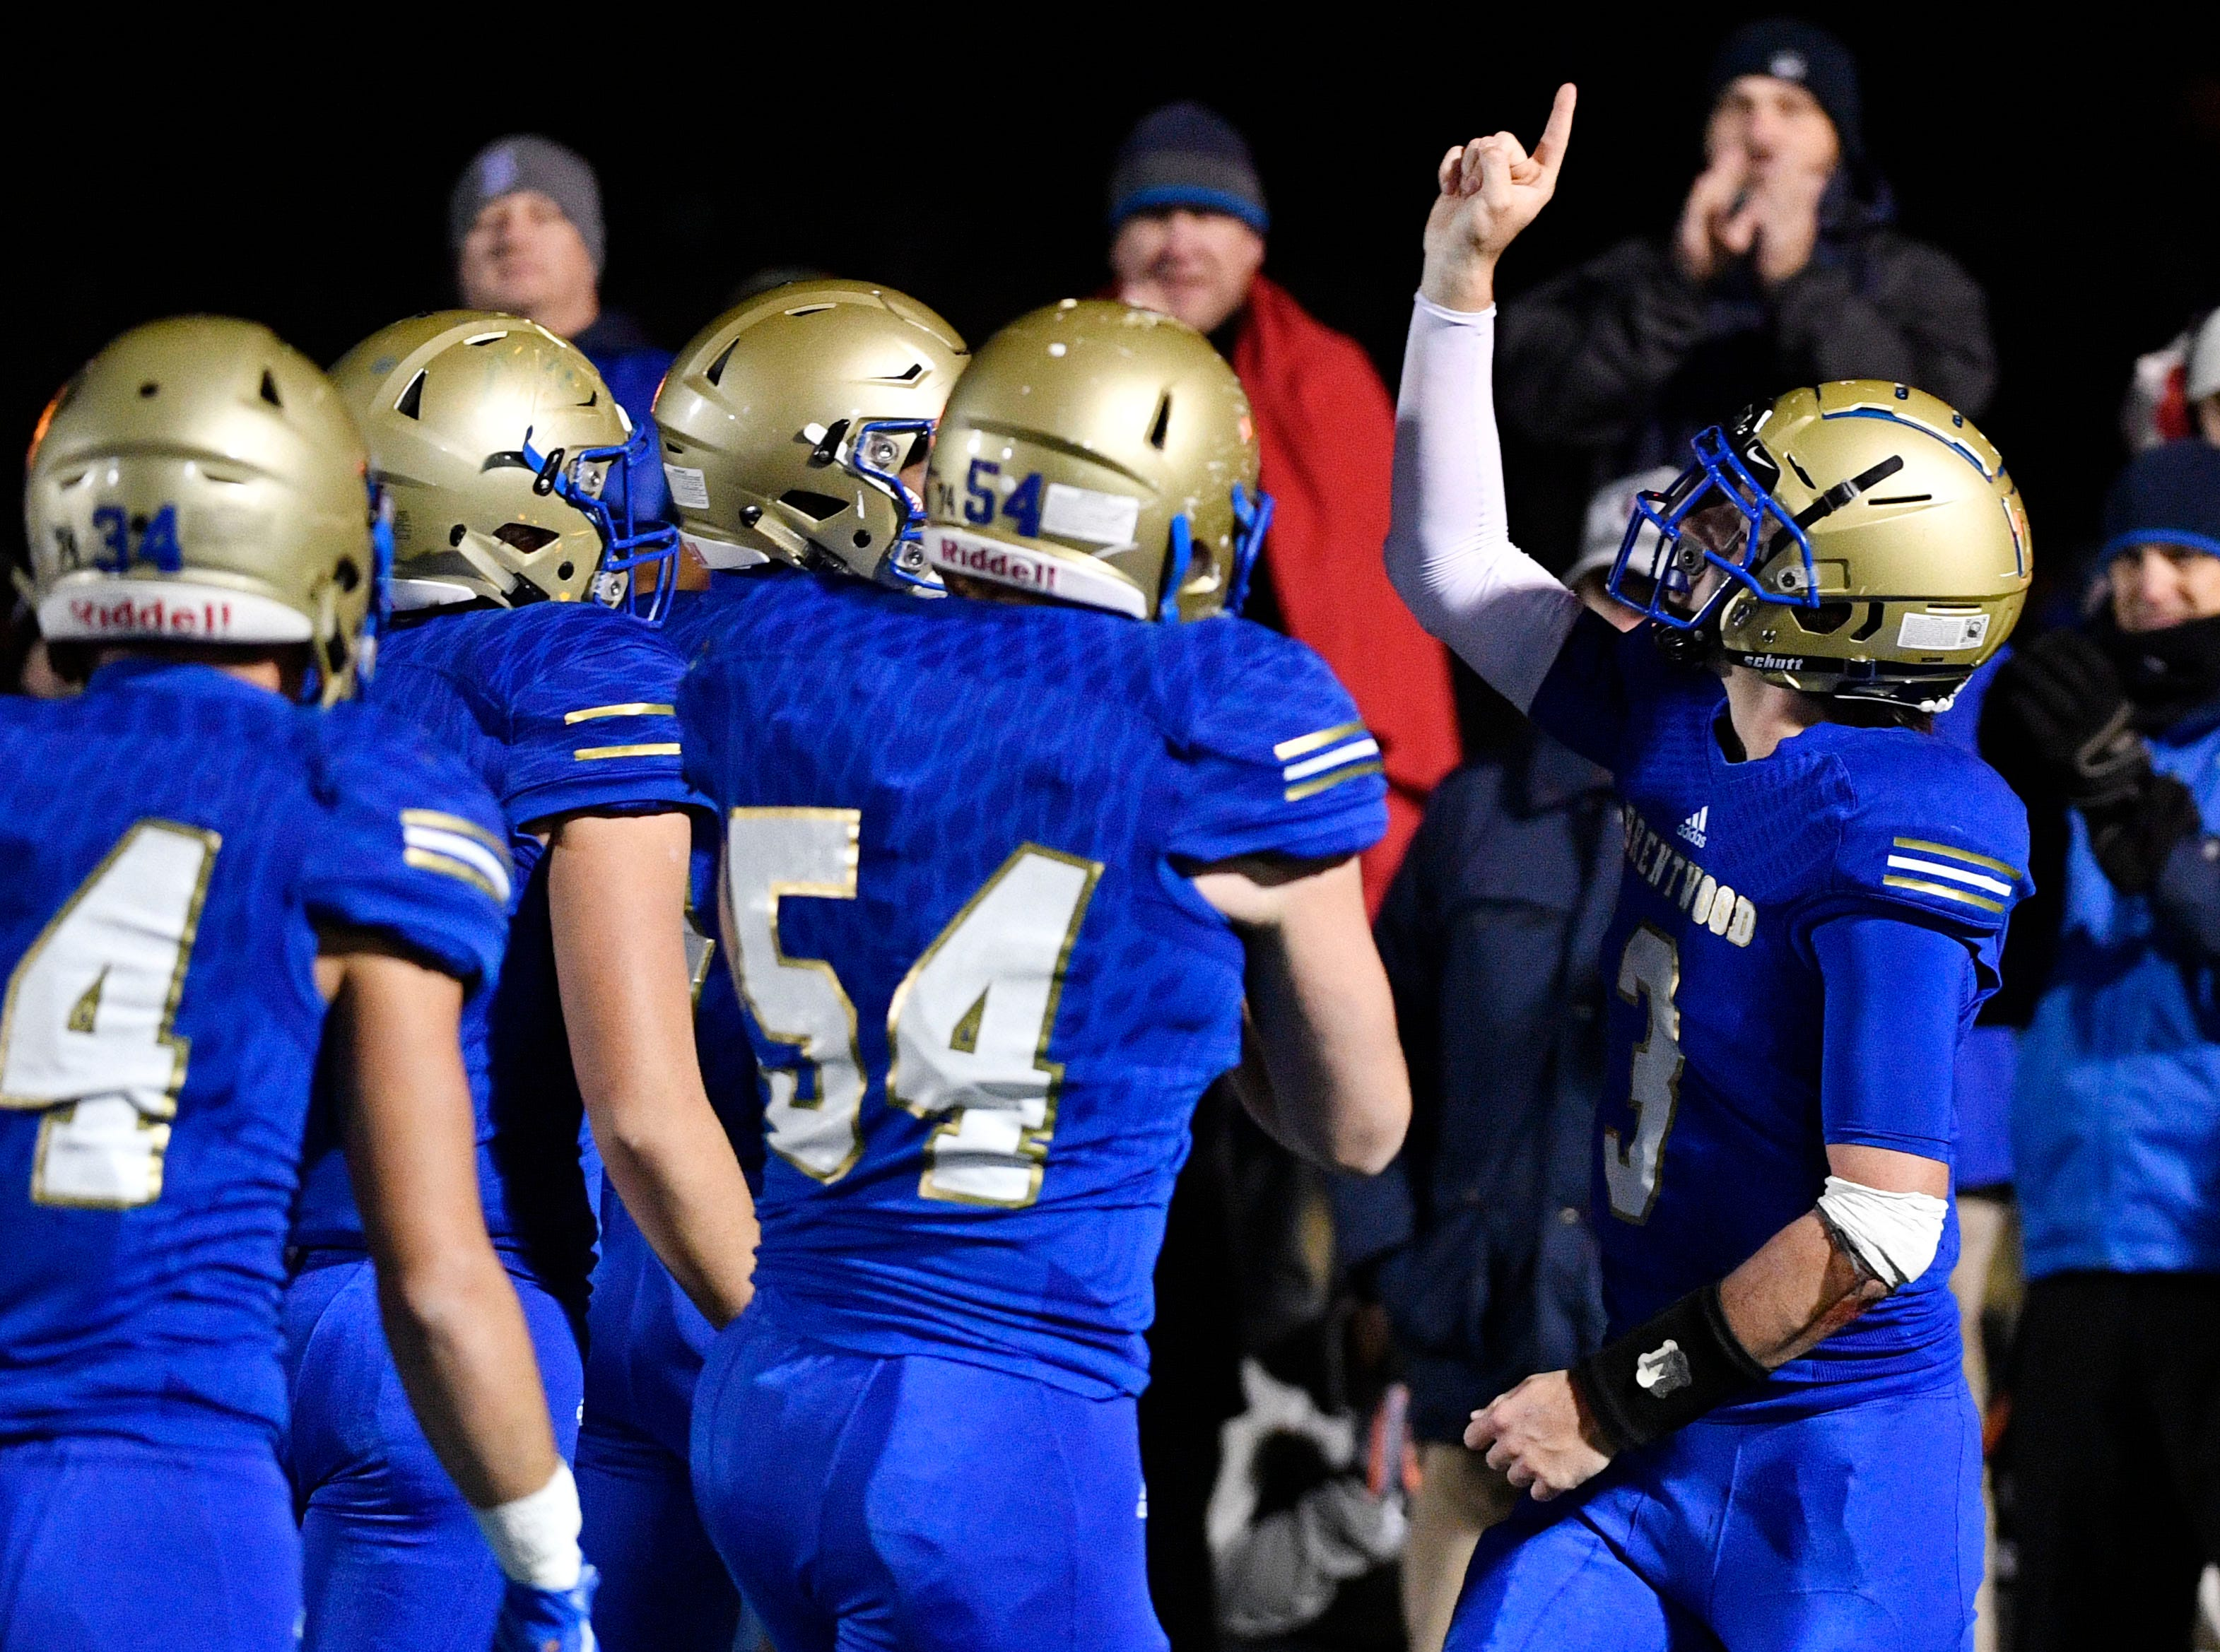 24.Brentwood(10-2) beat Independence, 27-24.